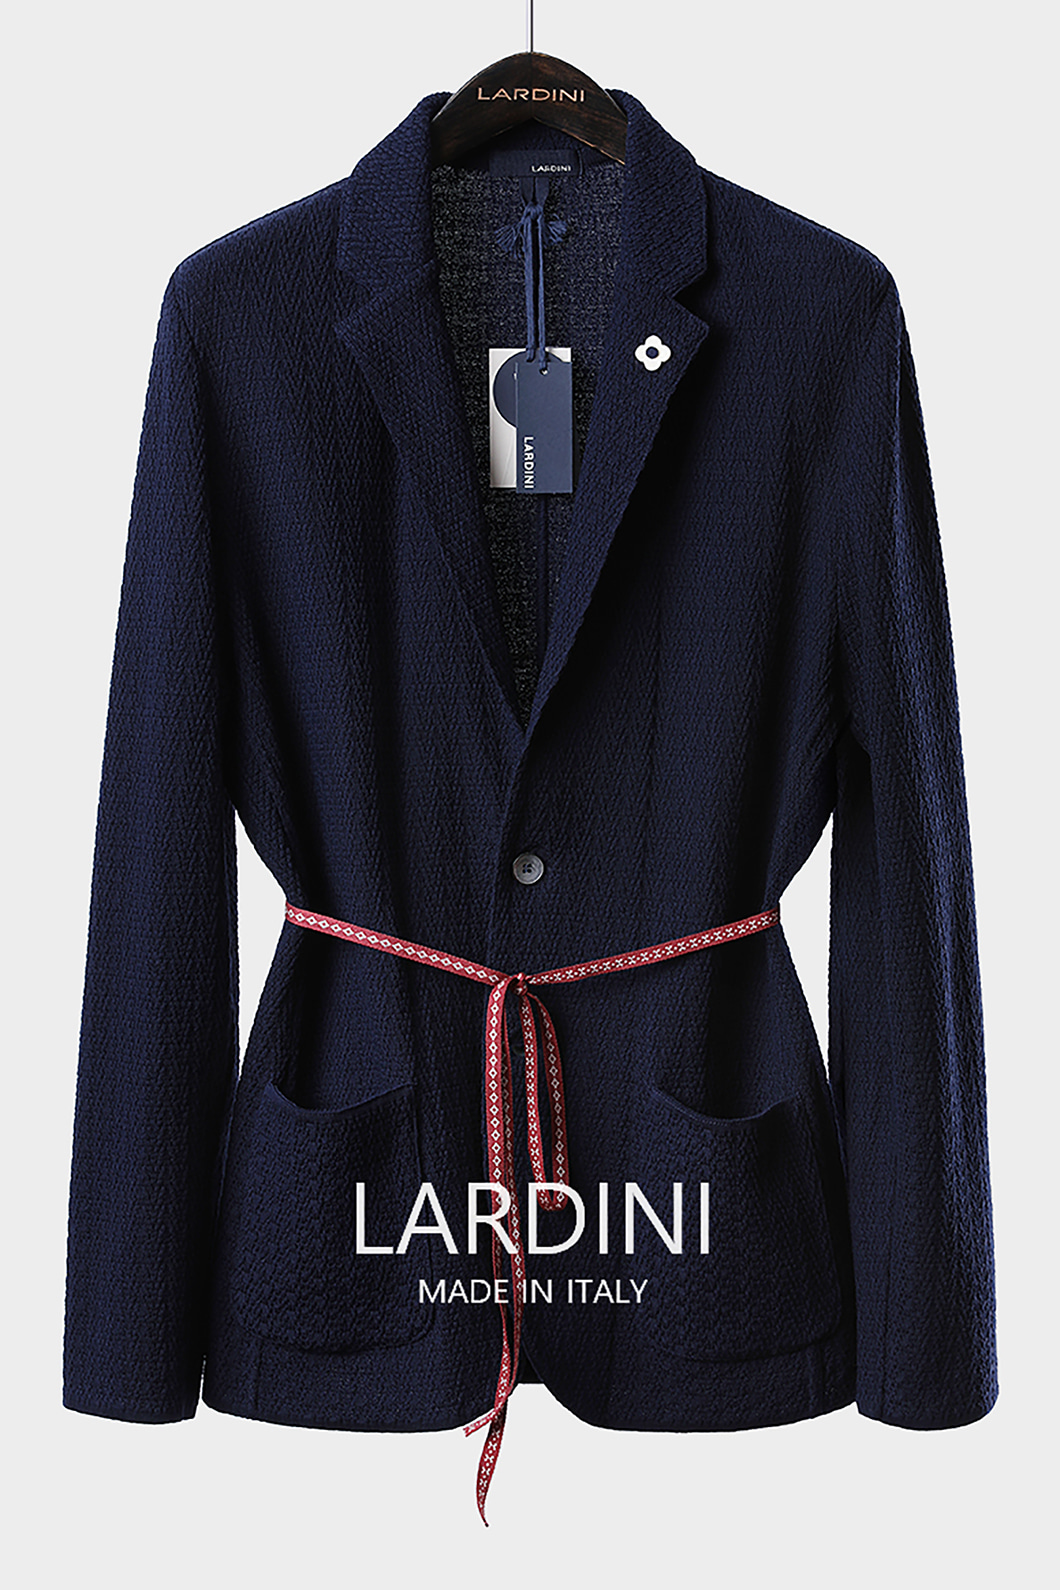 LARDINI SINGLE DIAMOND KNIT JACKET-NAVY[ITALY-Original]-극소량 한정!